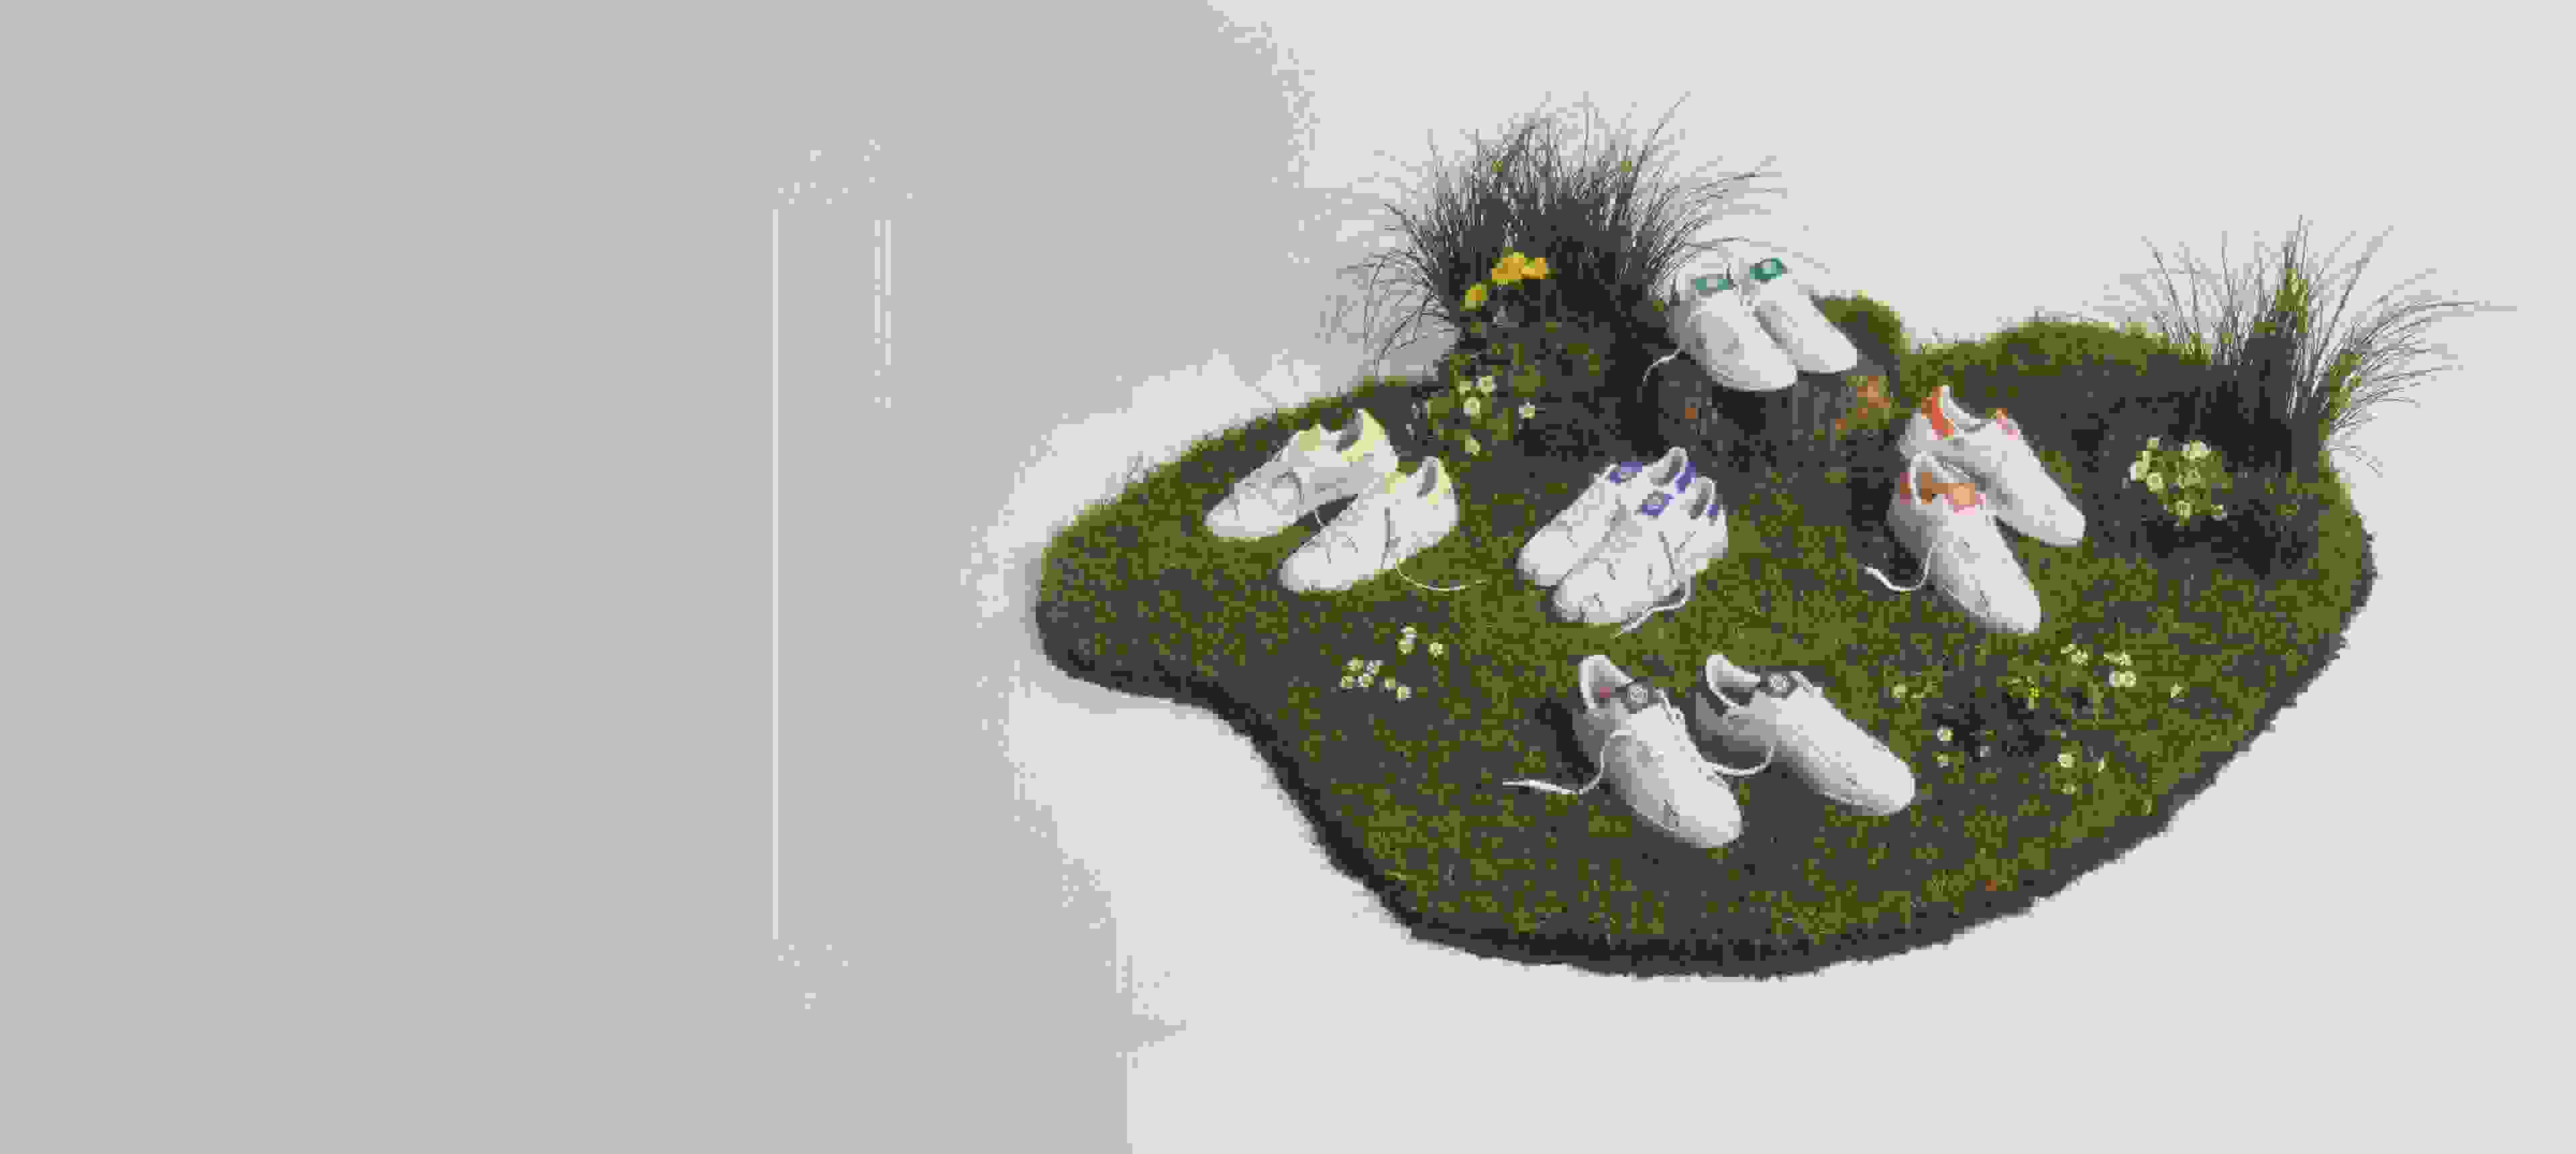 Pairs of Stan Smiths, Continental 80s, and Superstars from the Clean Classics collection on a patch of grass dotted with wildflowers.